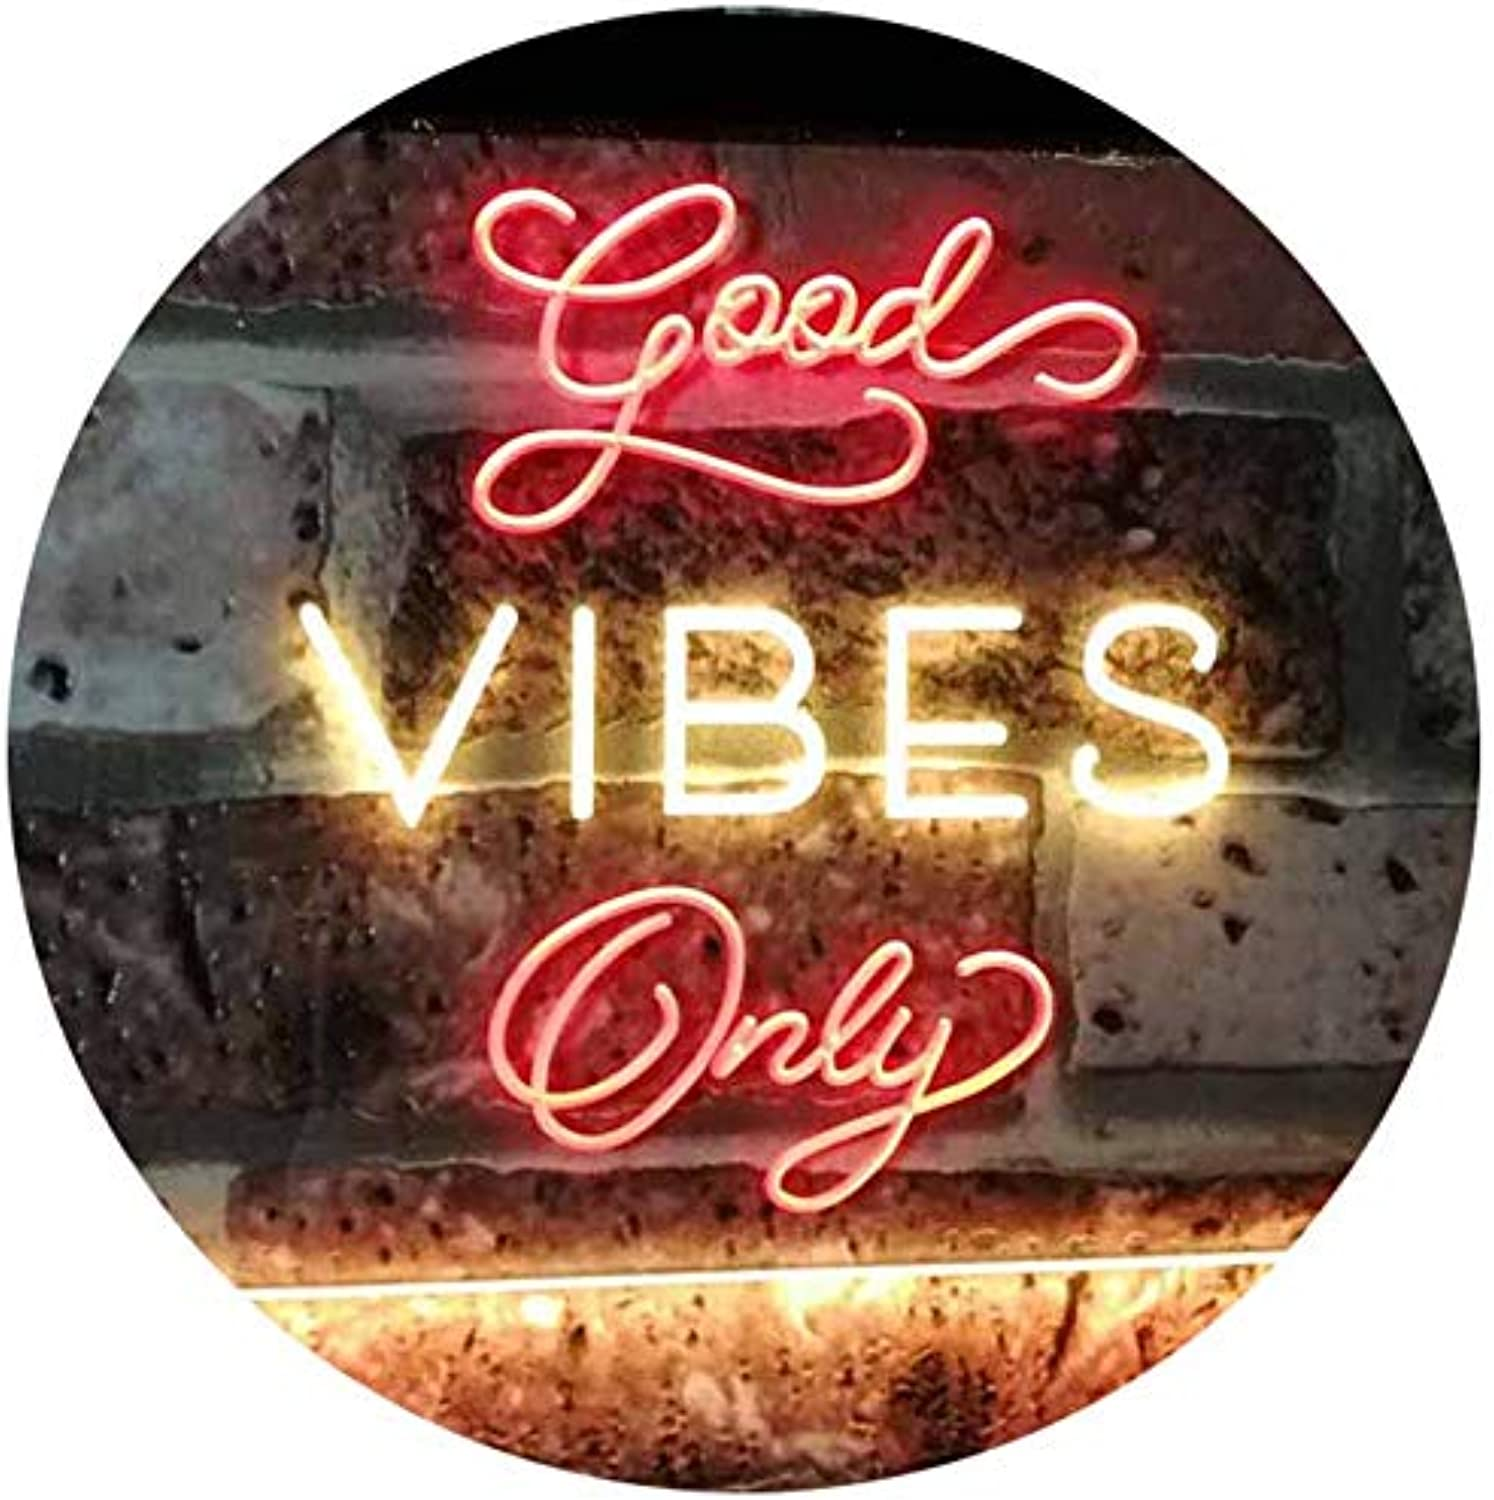 ADVPRO Good Vibes Only Home Bar Disco Room Display Dual Farbe LED Barlicht Neonlicht Lichtwerbung Neon Sign rot & Gelb 400mm x 300mm st6s43-i3076-ry